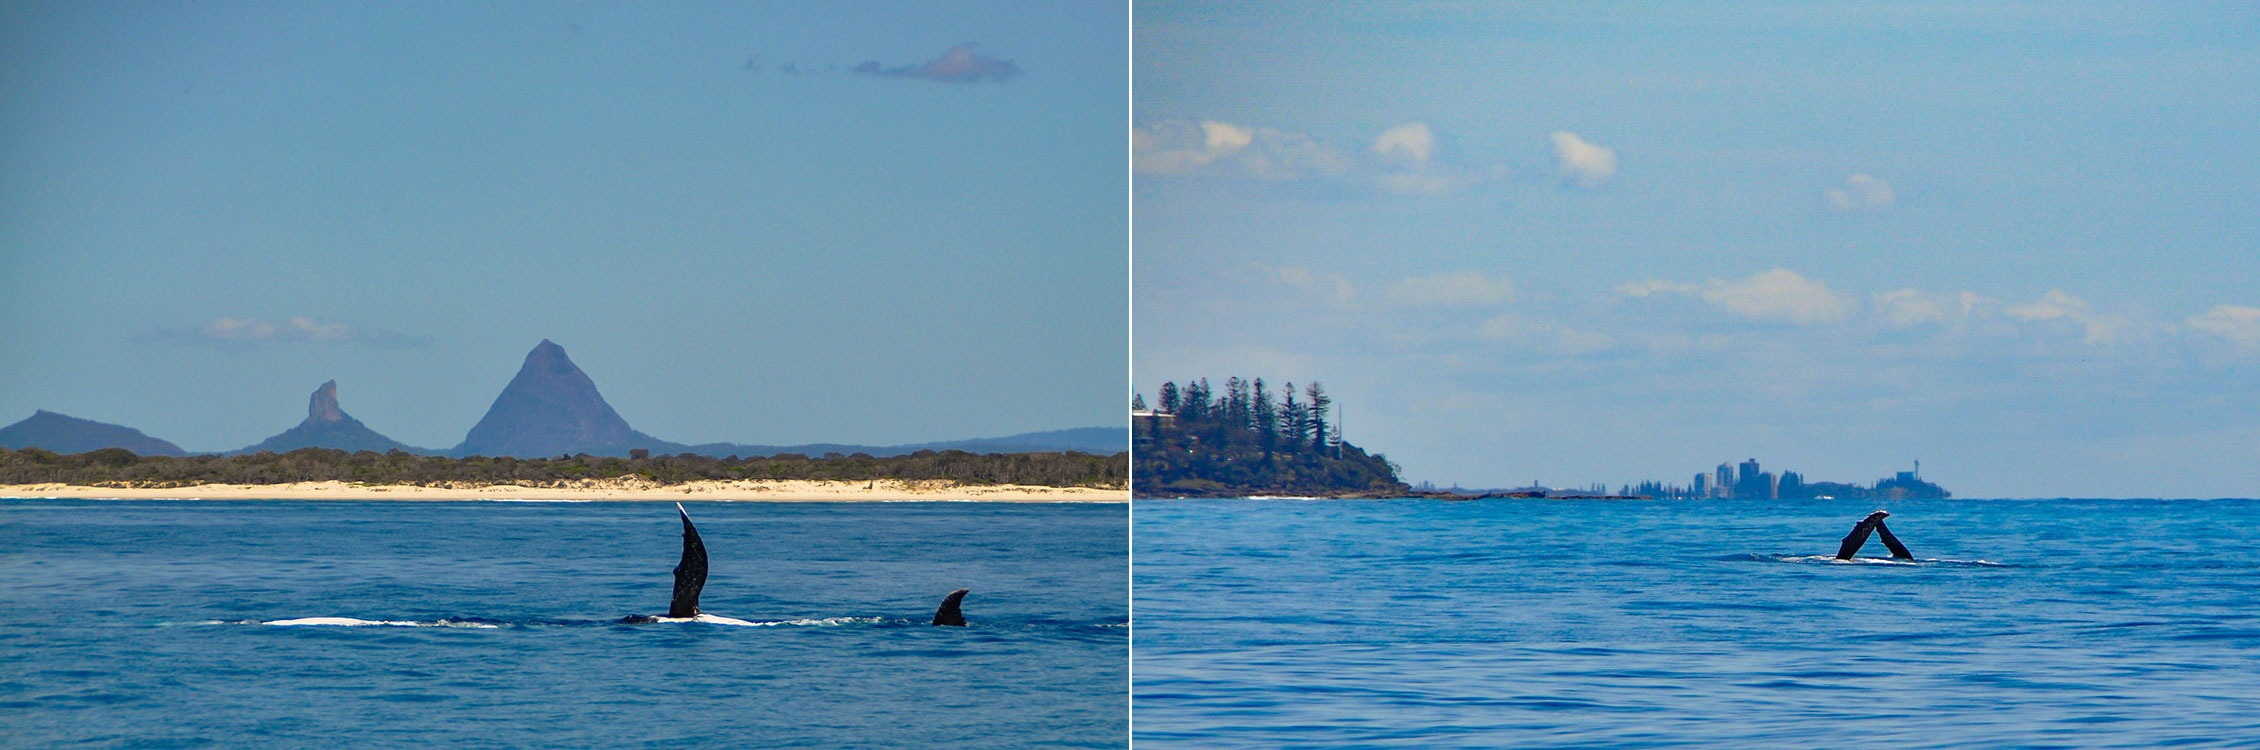 Left: Close encounters with whales. Right: A whale waves 'hello'.